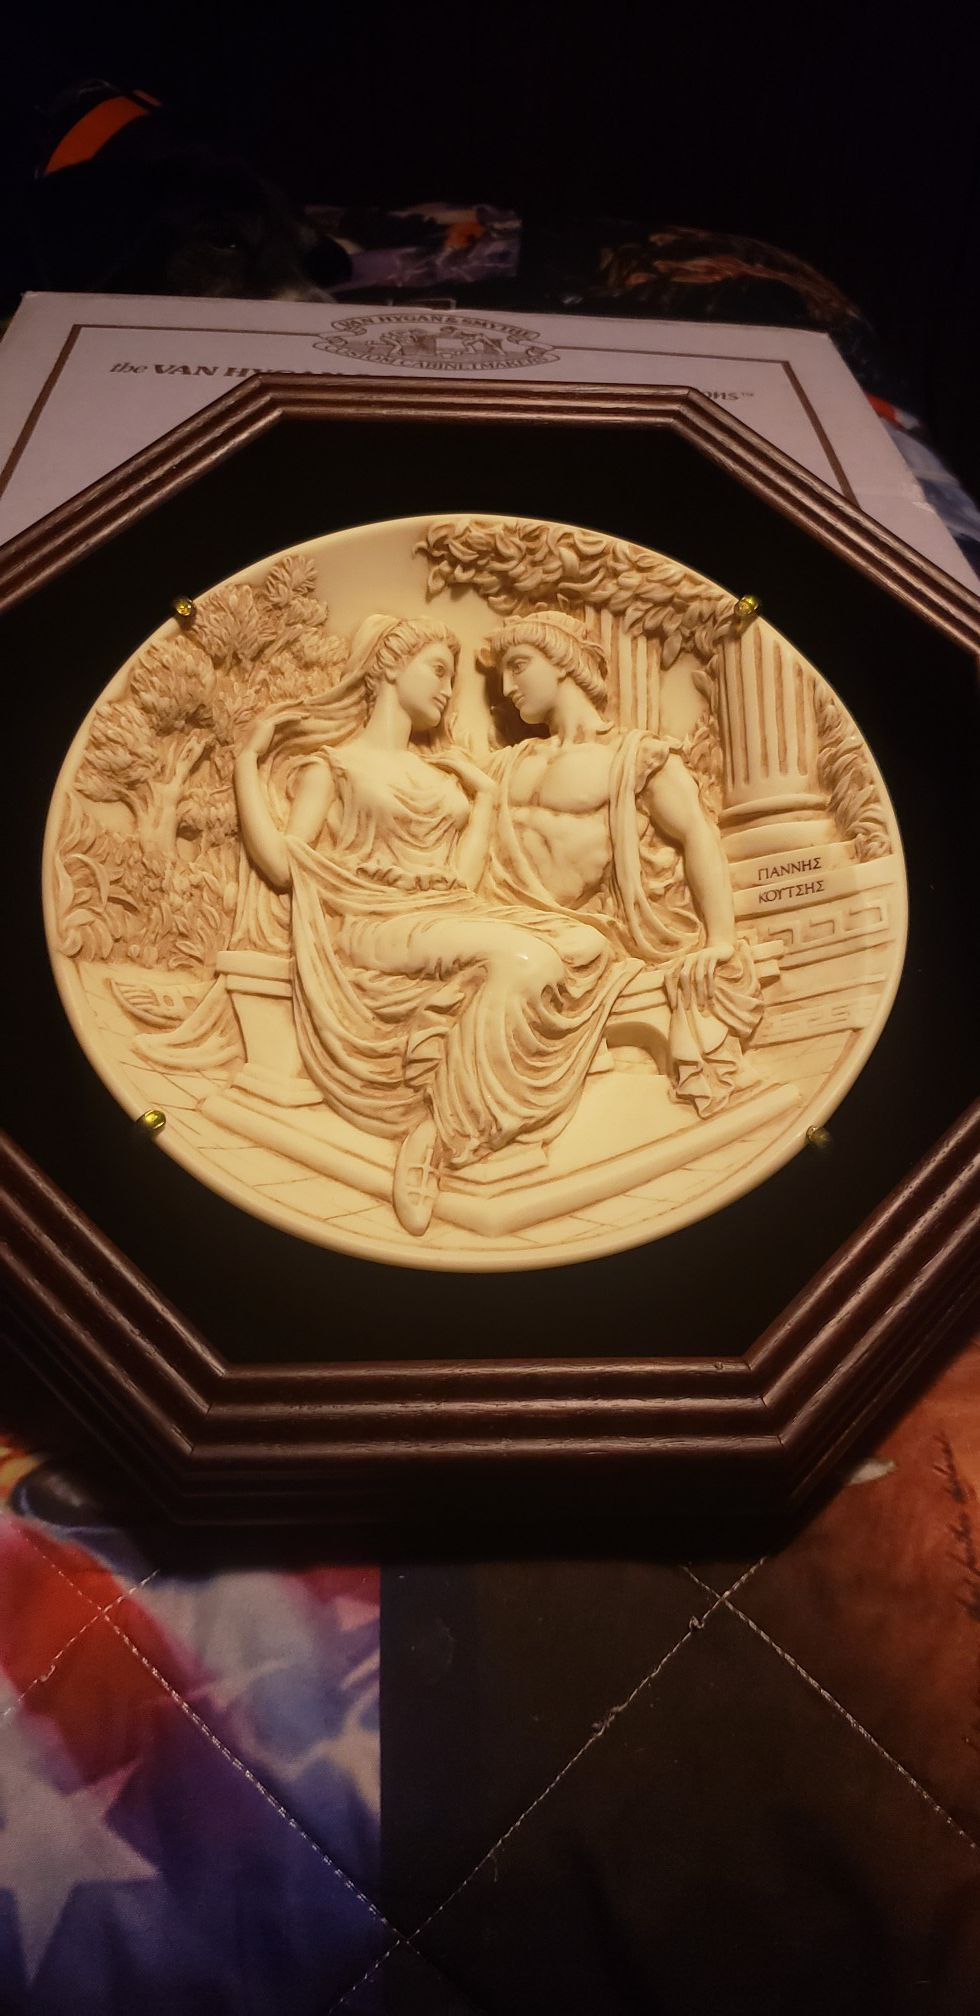 New in box 1988 Greek mythology marble collector plate